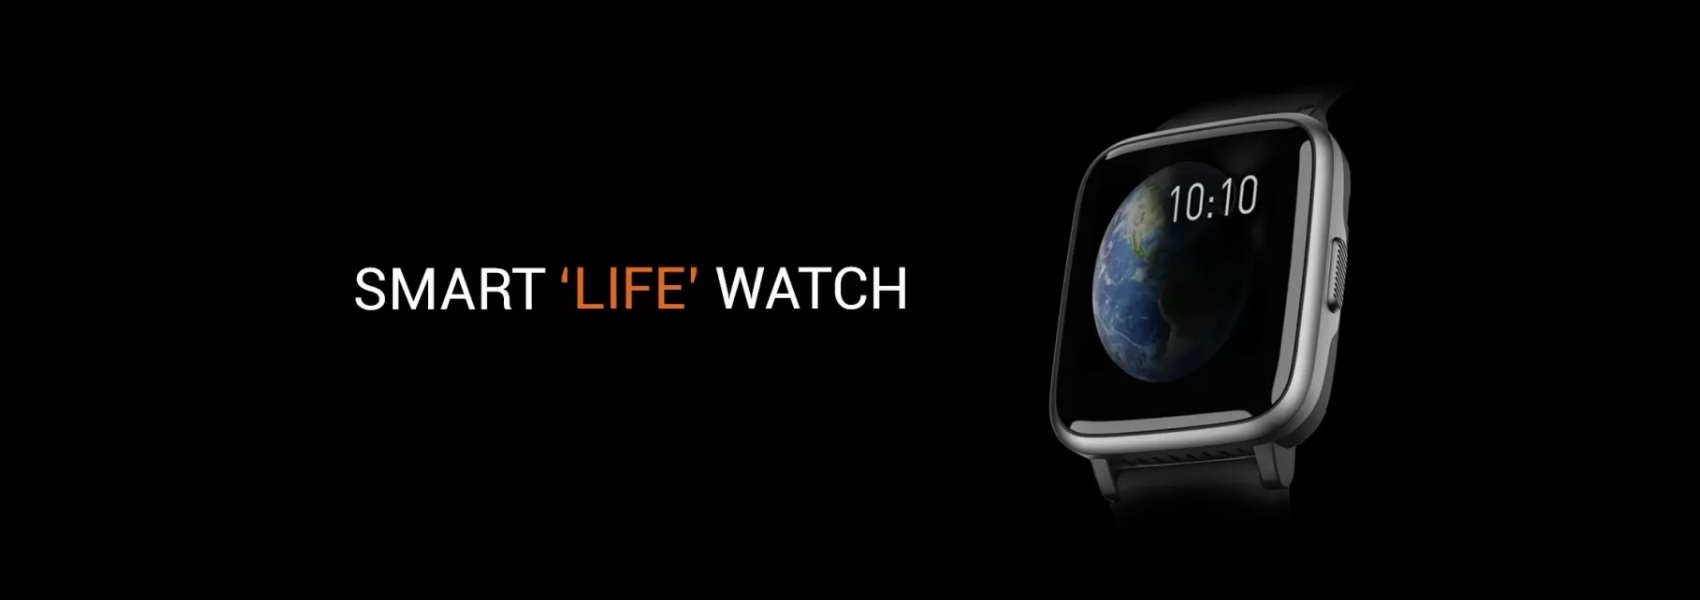 smartwatch Gionee Smart 'Life' Watch